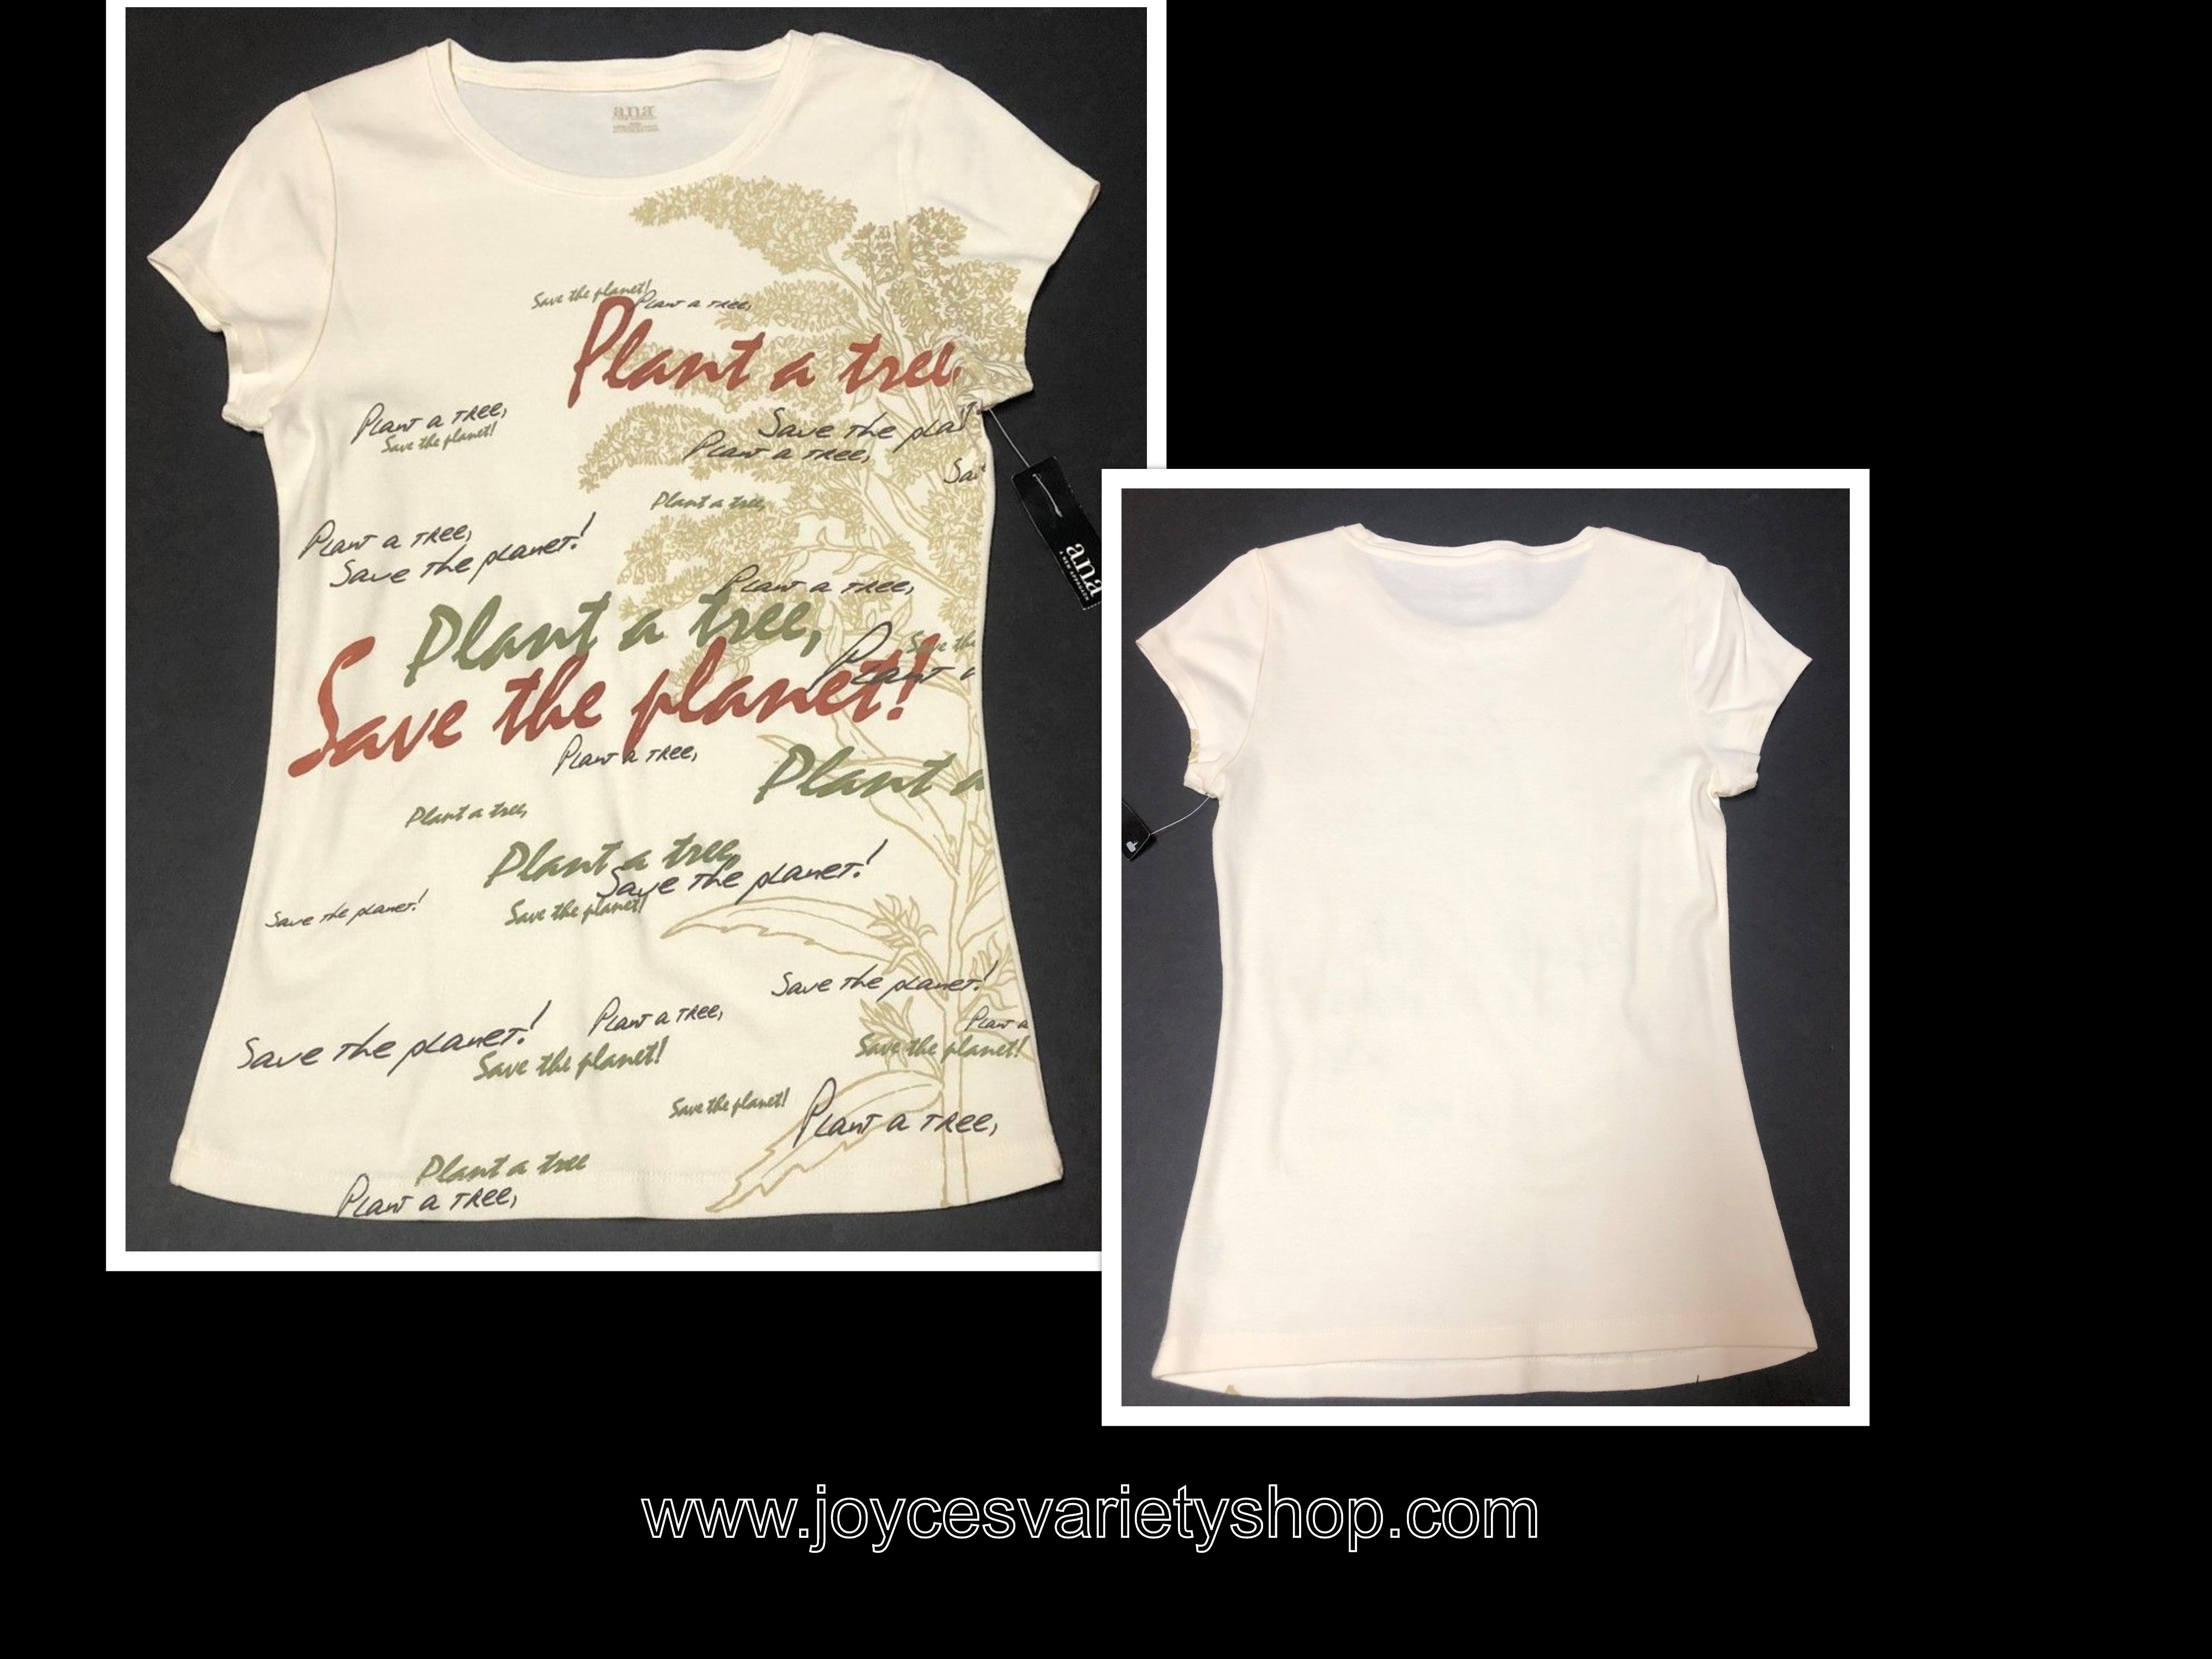 ANA T-Shirt Women's M Ivory Plant A Tree Save The Planet SZ MM